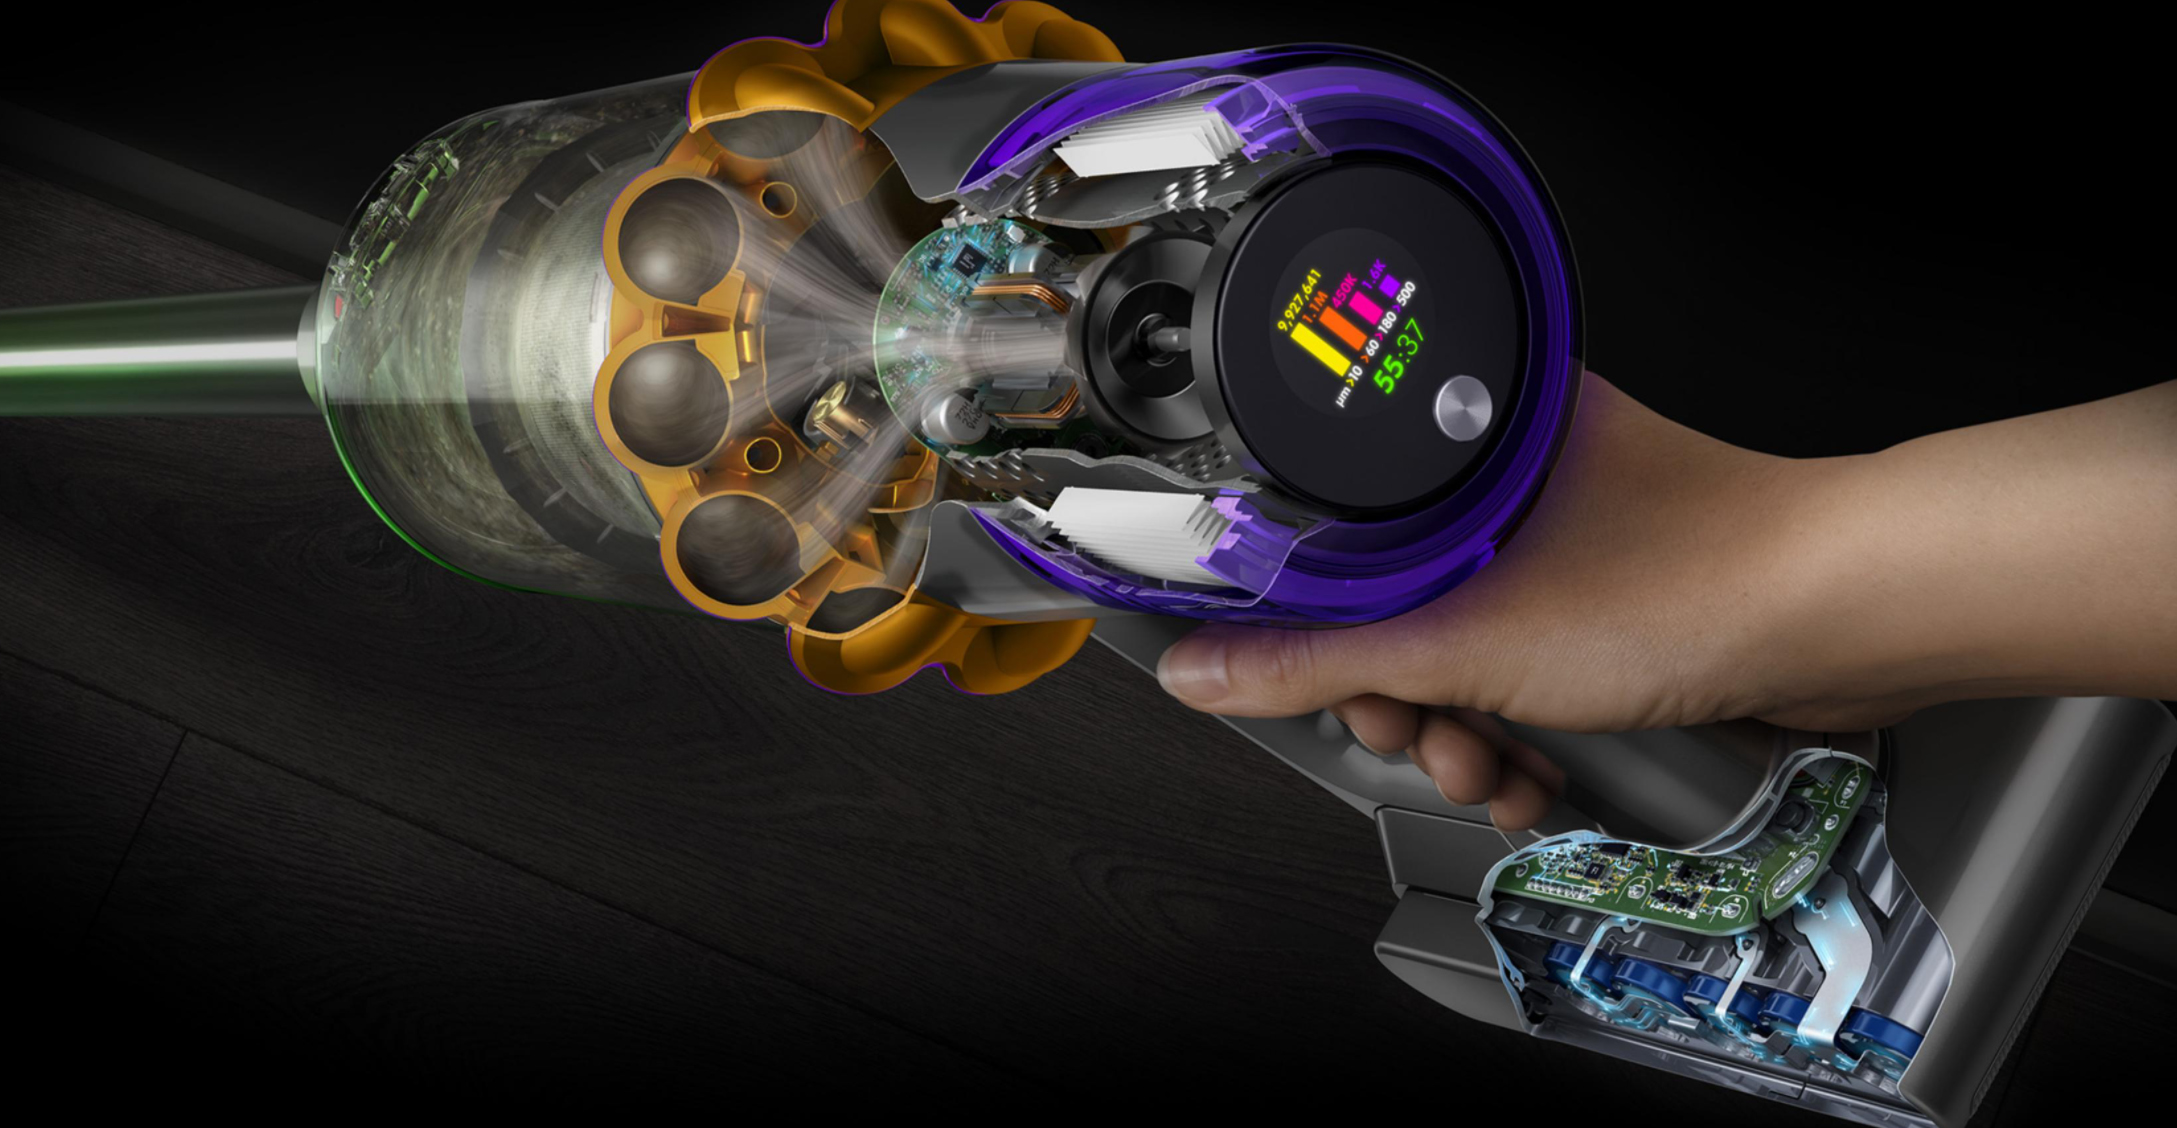 Dyson's new laser-equipped vacuum tallies up dust kill counts like a videogame